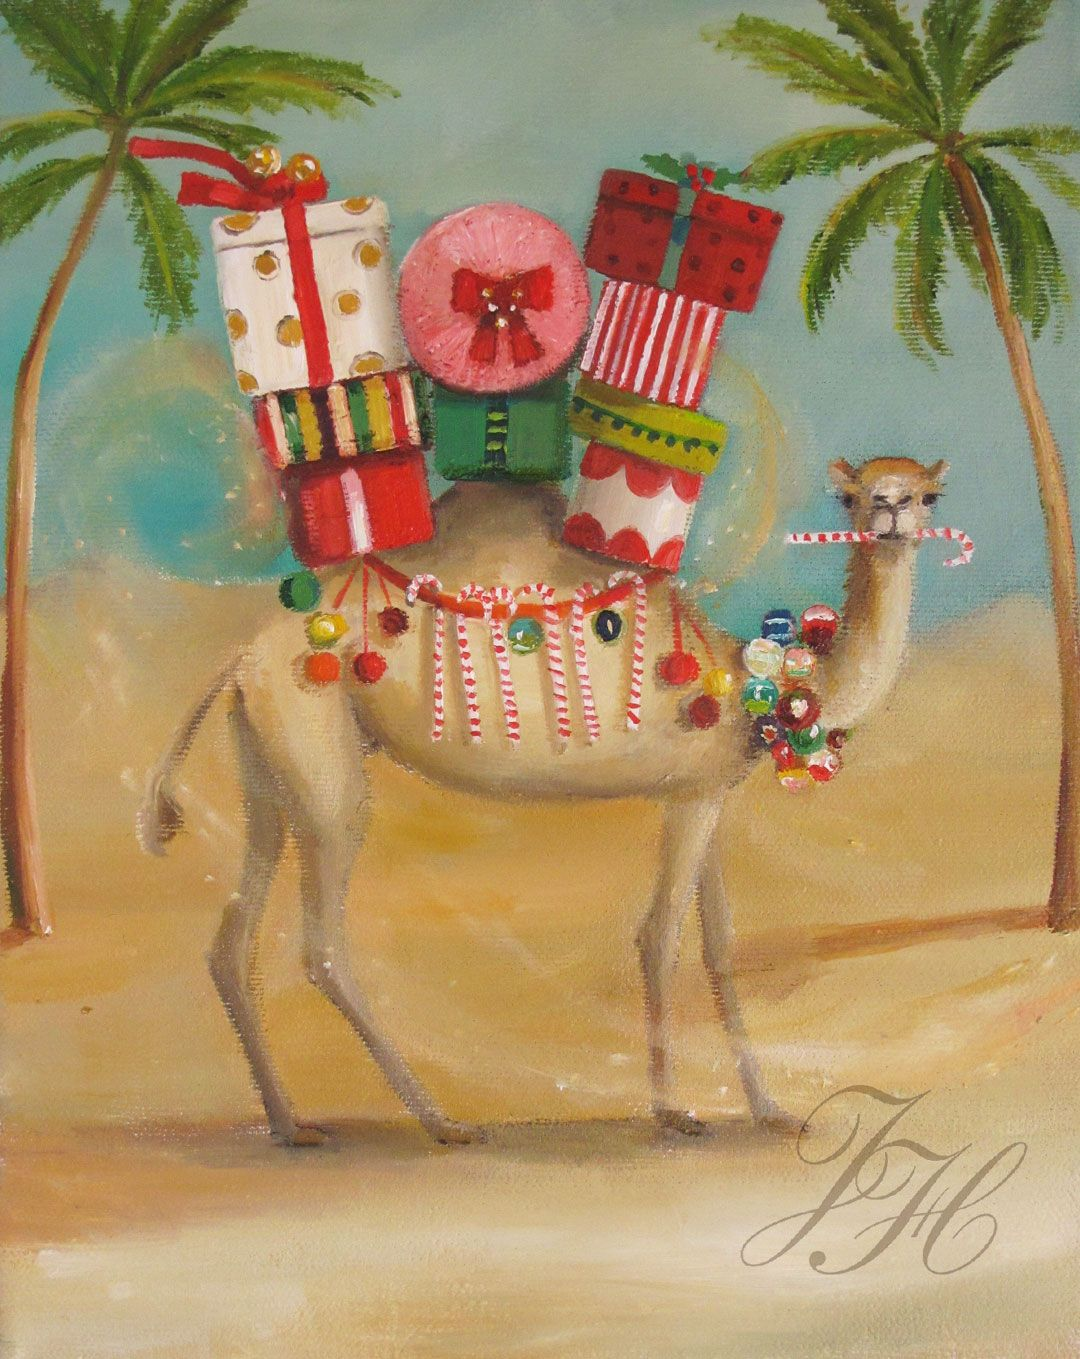 The Christmas Camel Preferred A More Temperate Climate By Janet Hill, 11.22.16